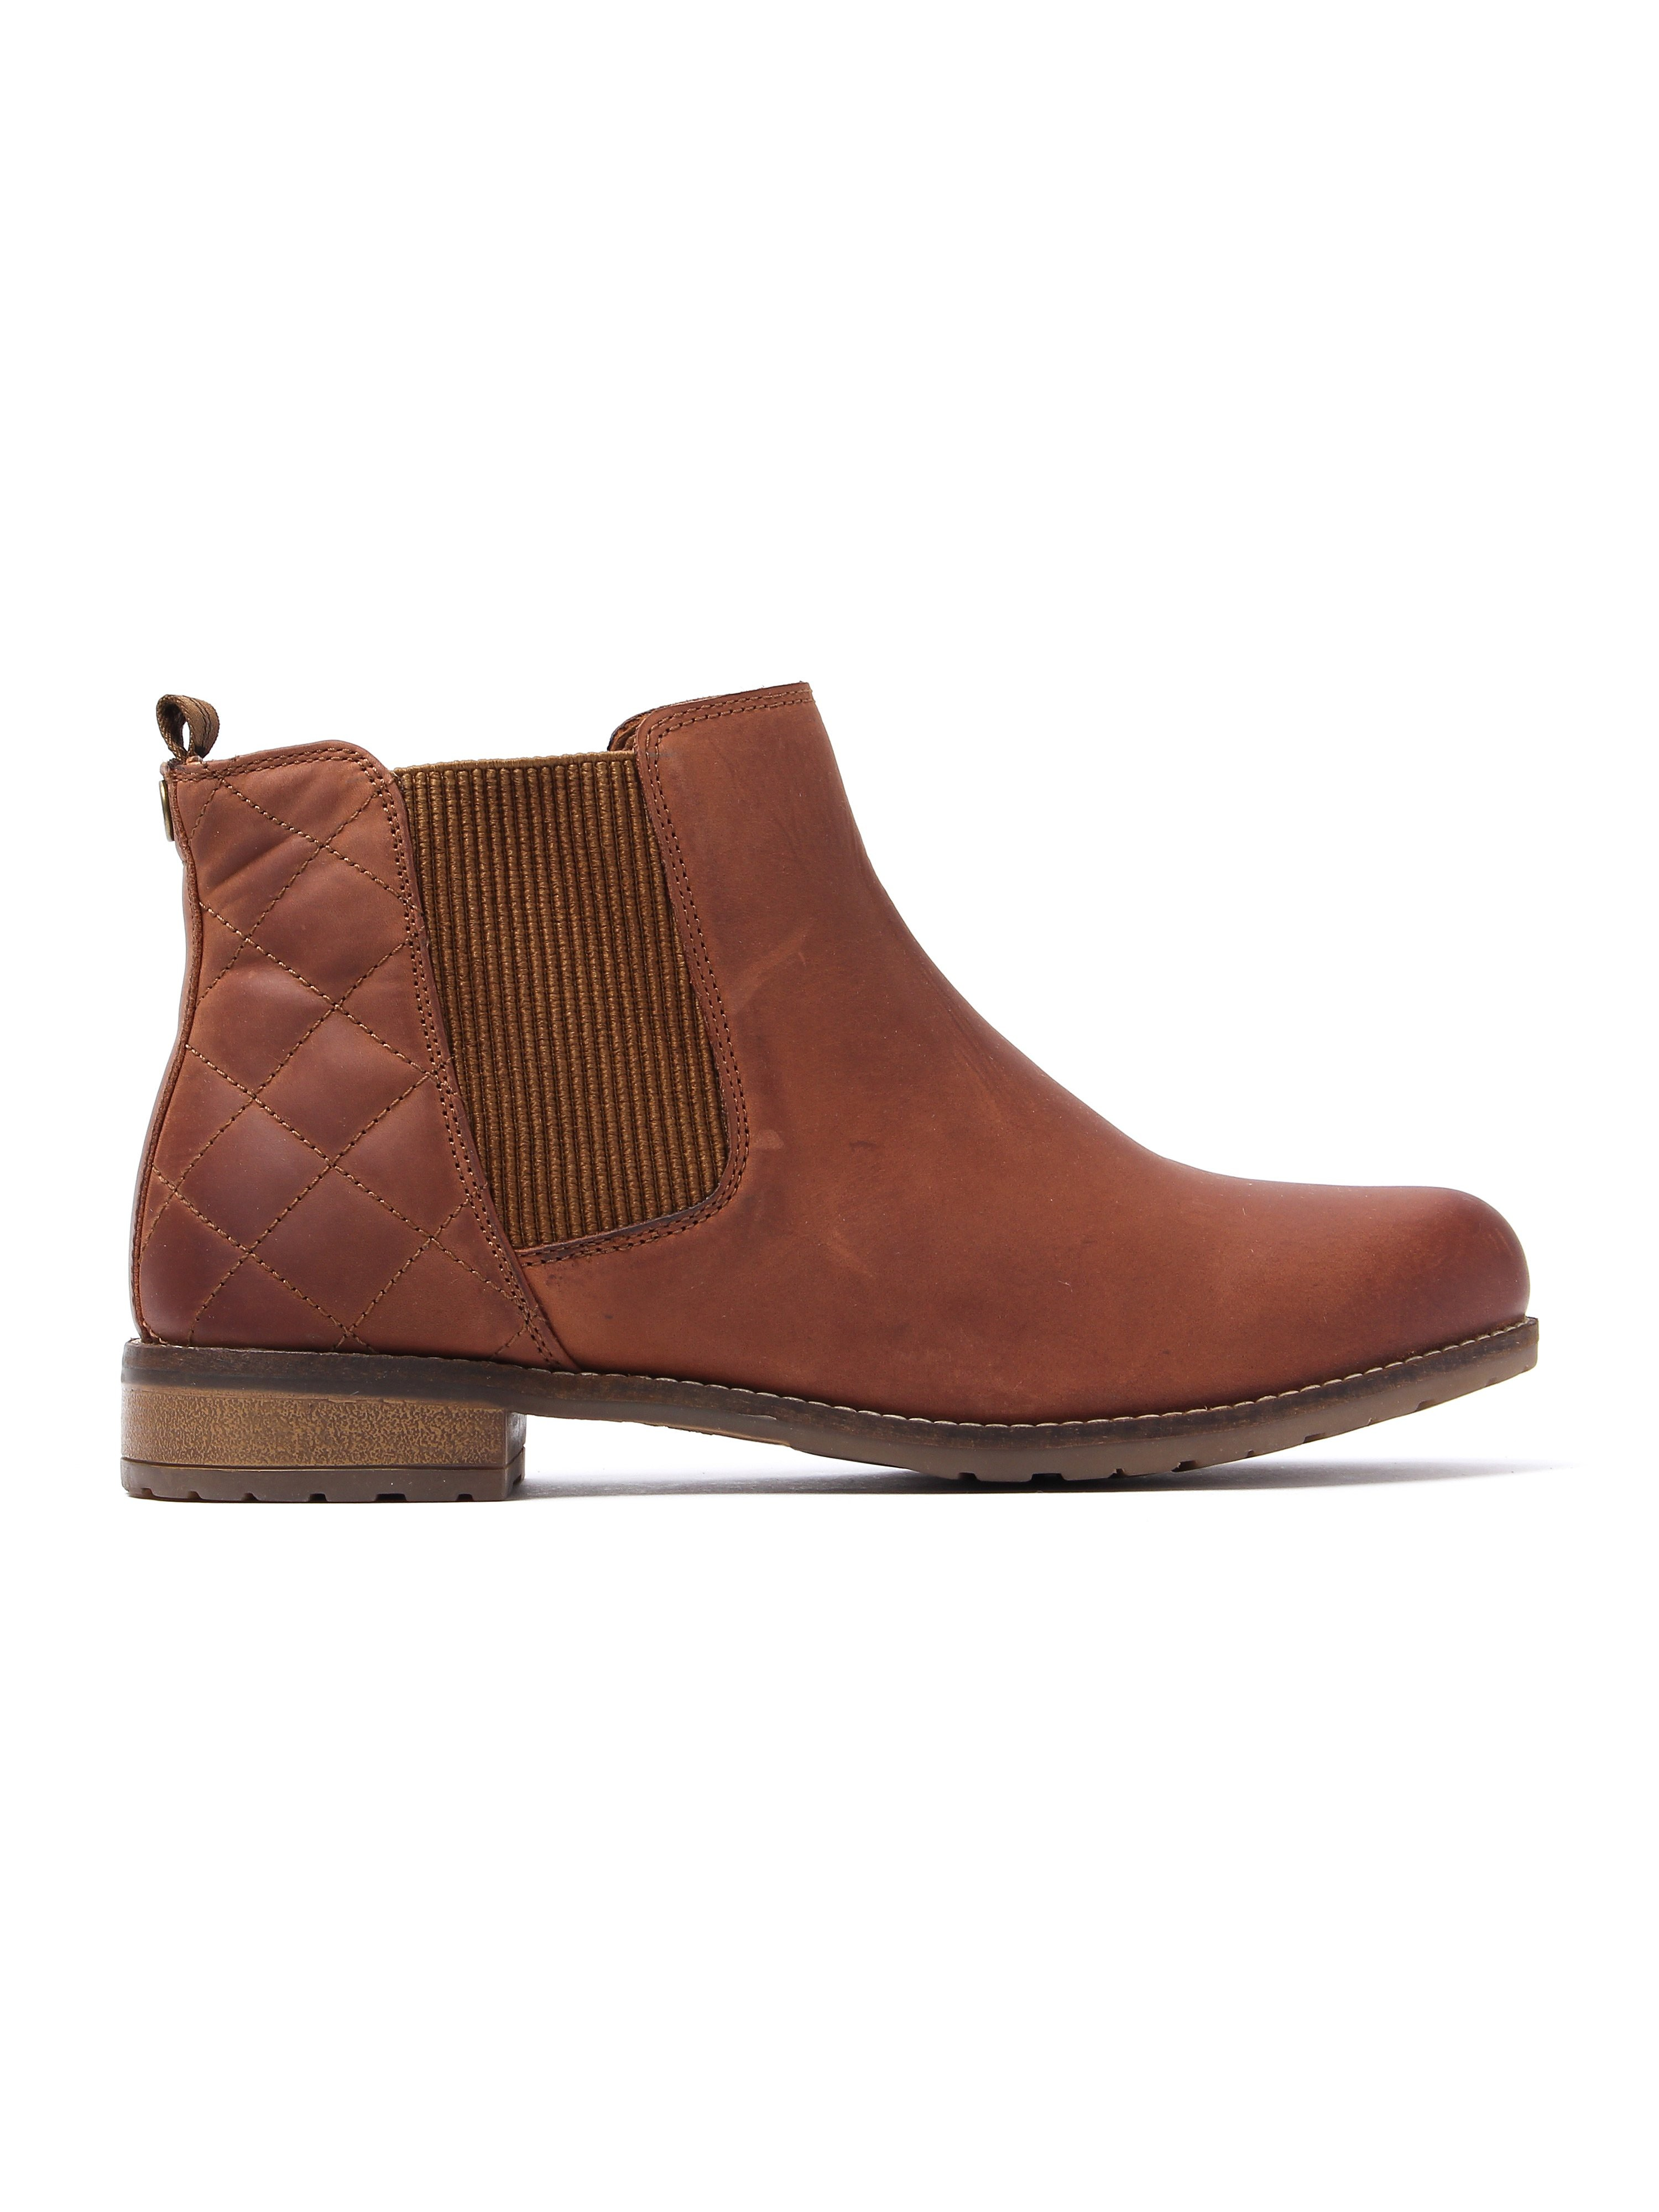 Barbour Women's Abigail Chelsea Boots - Cognac Leather